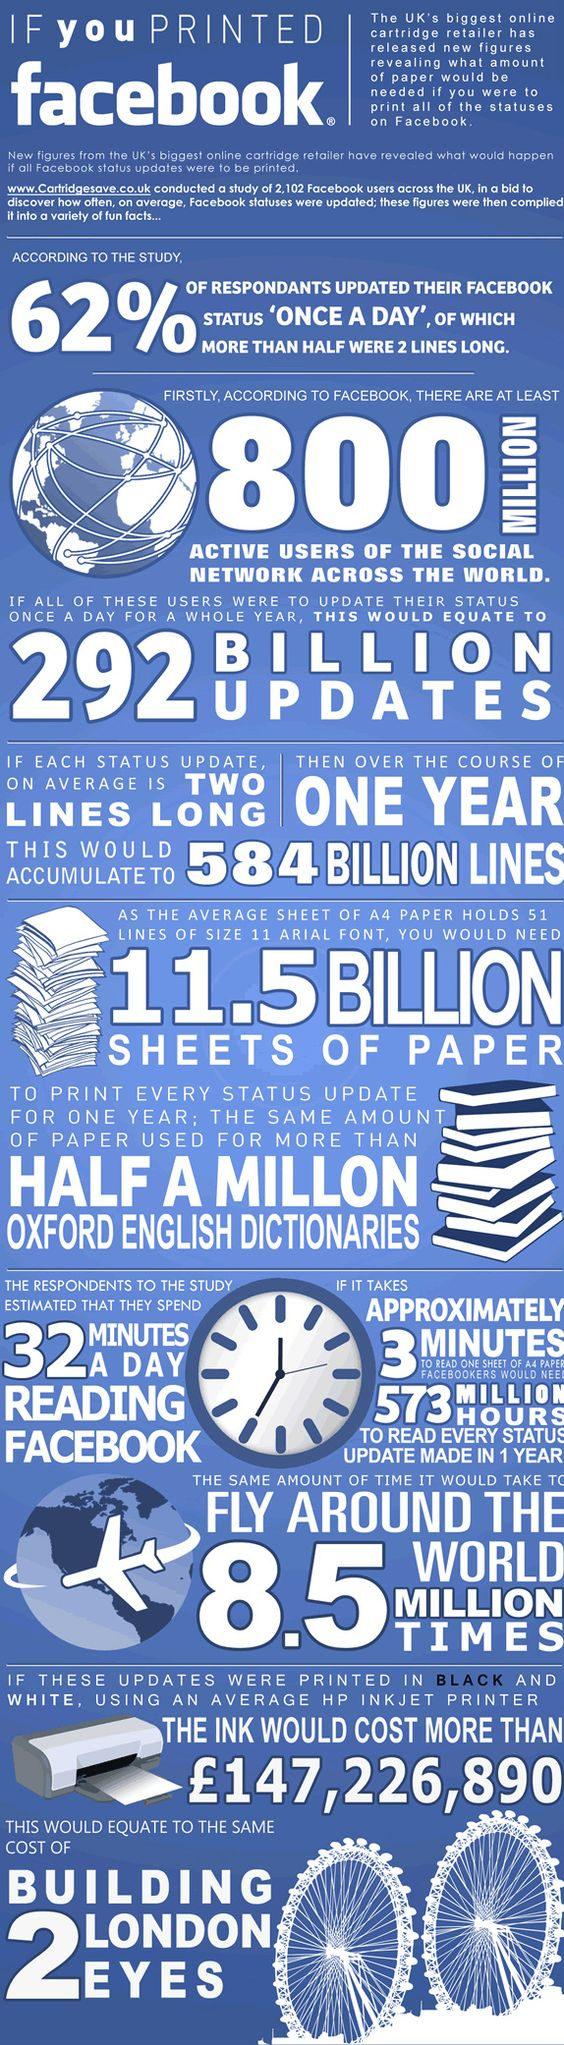 #faceook #infographic Want to Print Facebook? Better Get 11.5 Billion Sheets of Paper